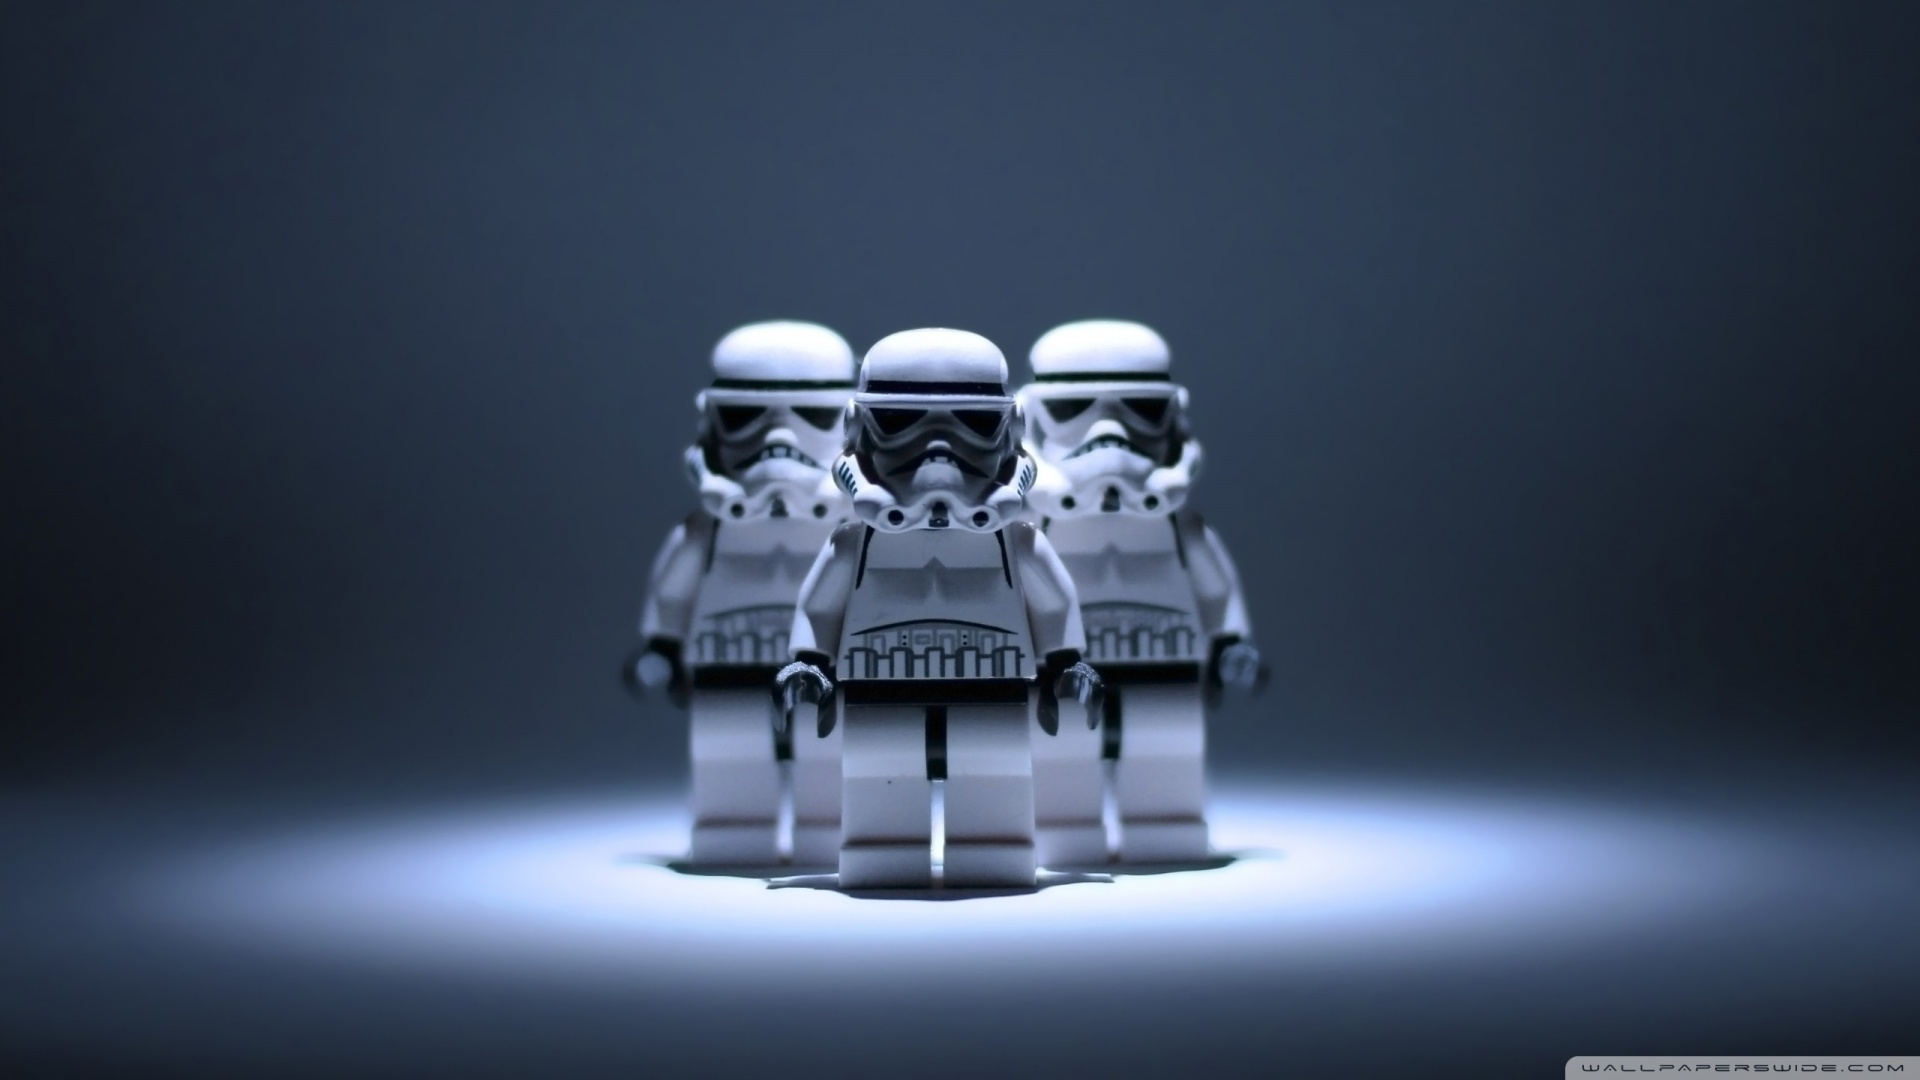 Star Wars Lego Stormtrooper Wallpaper 1920x1080 Star Wars Lego 1920x1080